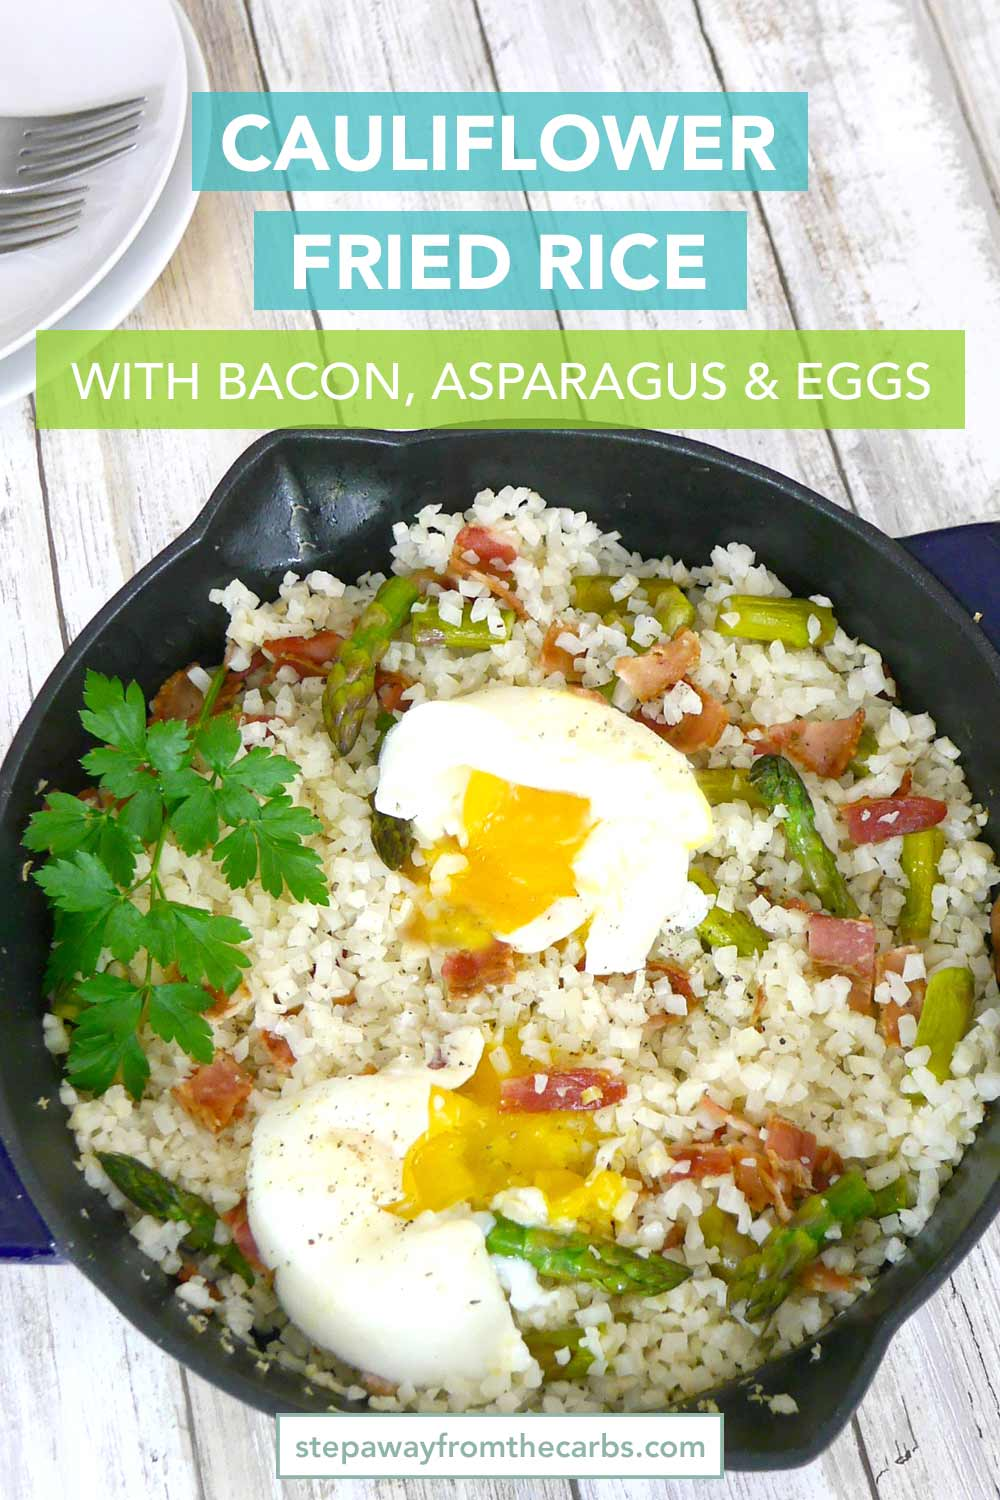 Cauliflower Fried Rice with Bacon, Asparagus and Poached Eggs - a low carb, keto, and gluten free recipe